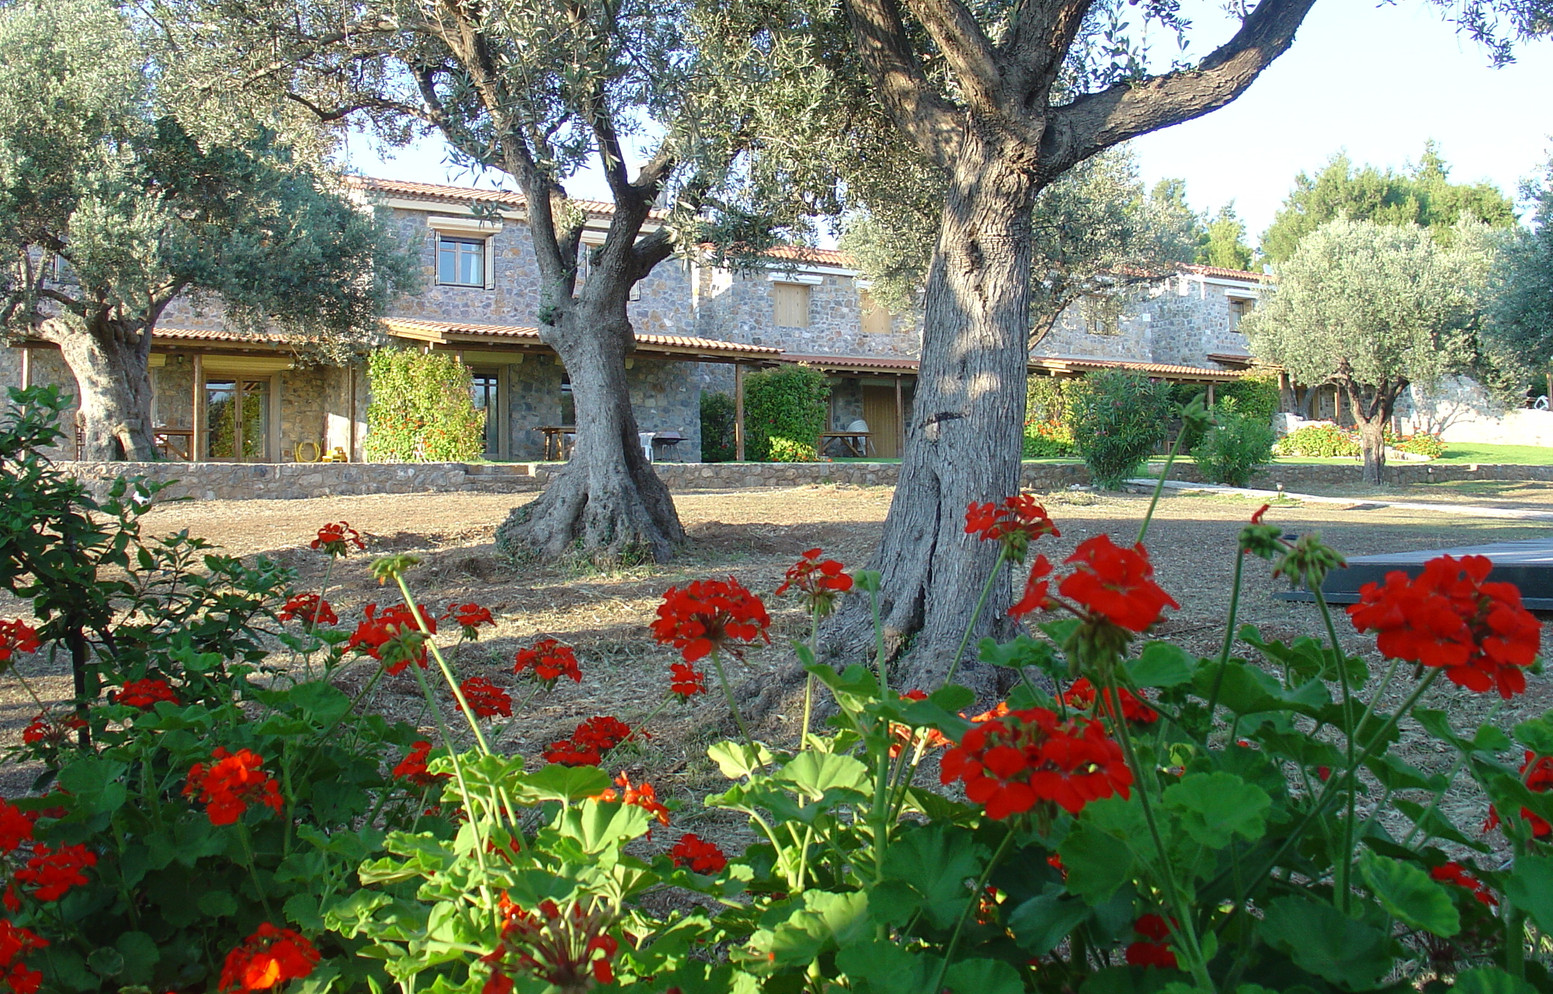 Houses from Olive Grove